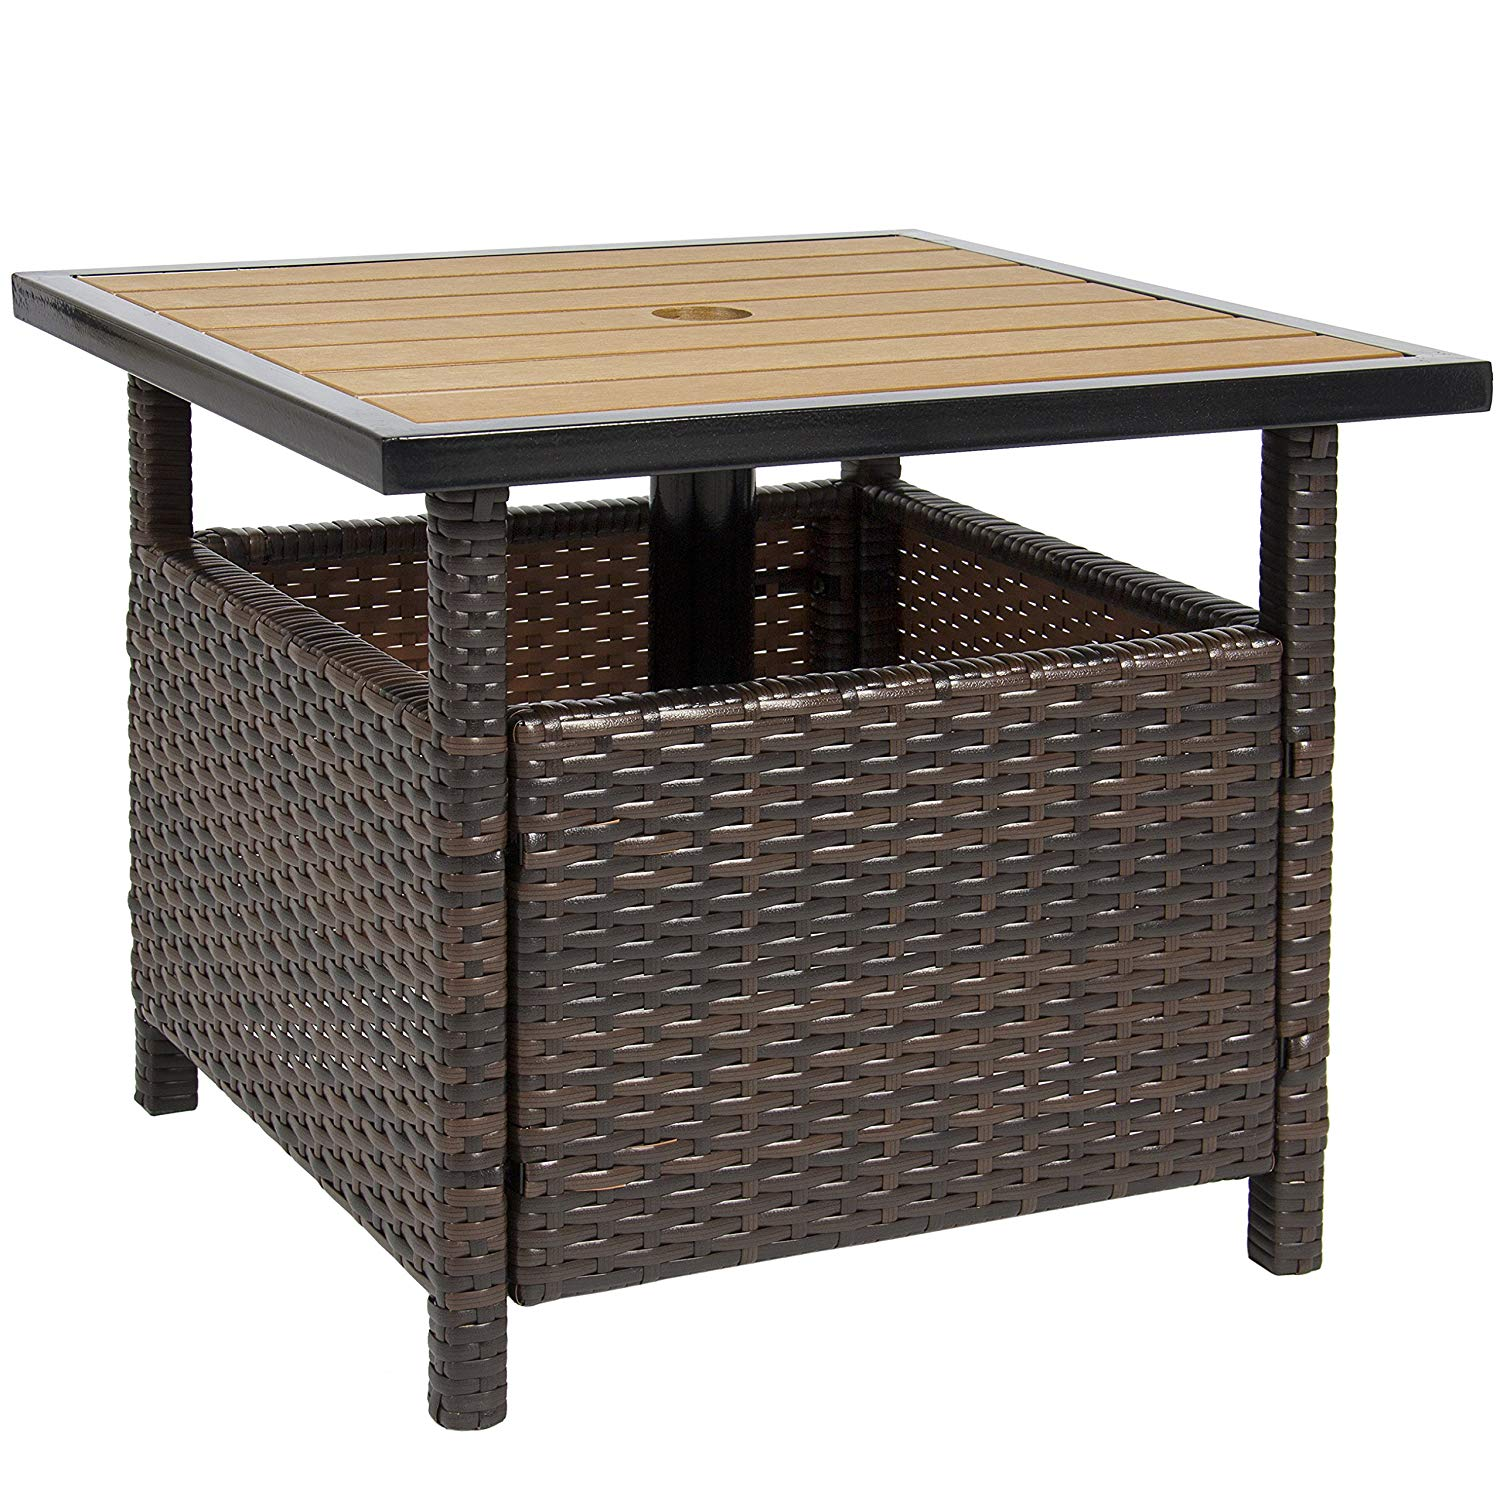 best choice products outdoor furniture wicker rattan patio umbrella accent table stand for garden pool deck brown antique living room tables wood end blue nightstand skinny couch